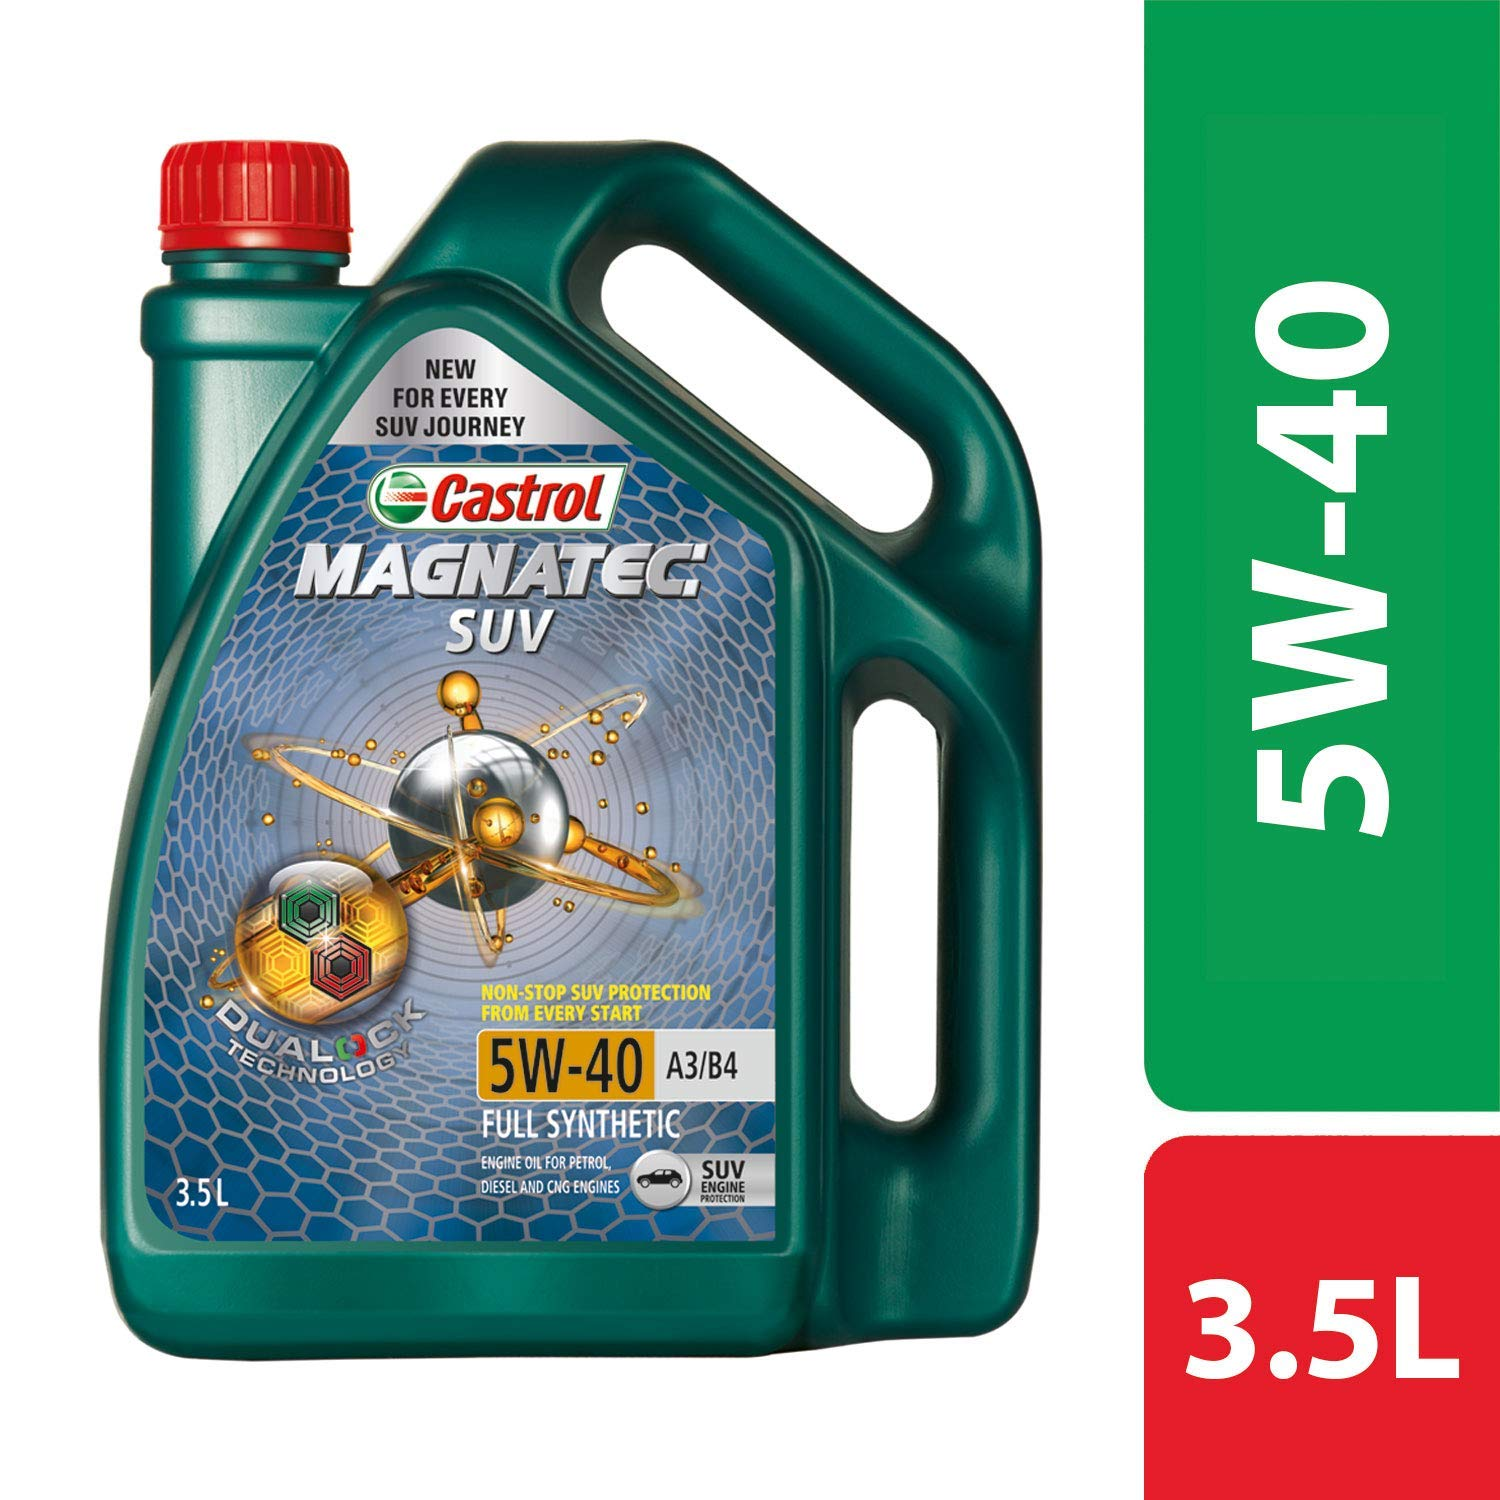 Castrol - 3421148 MAGNATEC SUV 5W-40 Full Synthetic Engine Oil for Petrol, CNG and Diesel SUVs (3.5L)